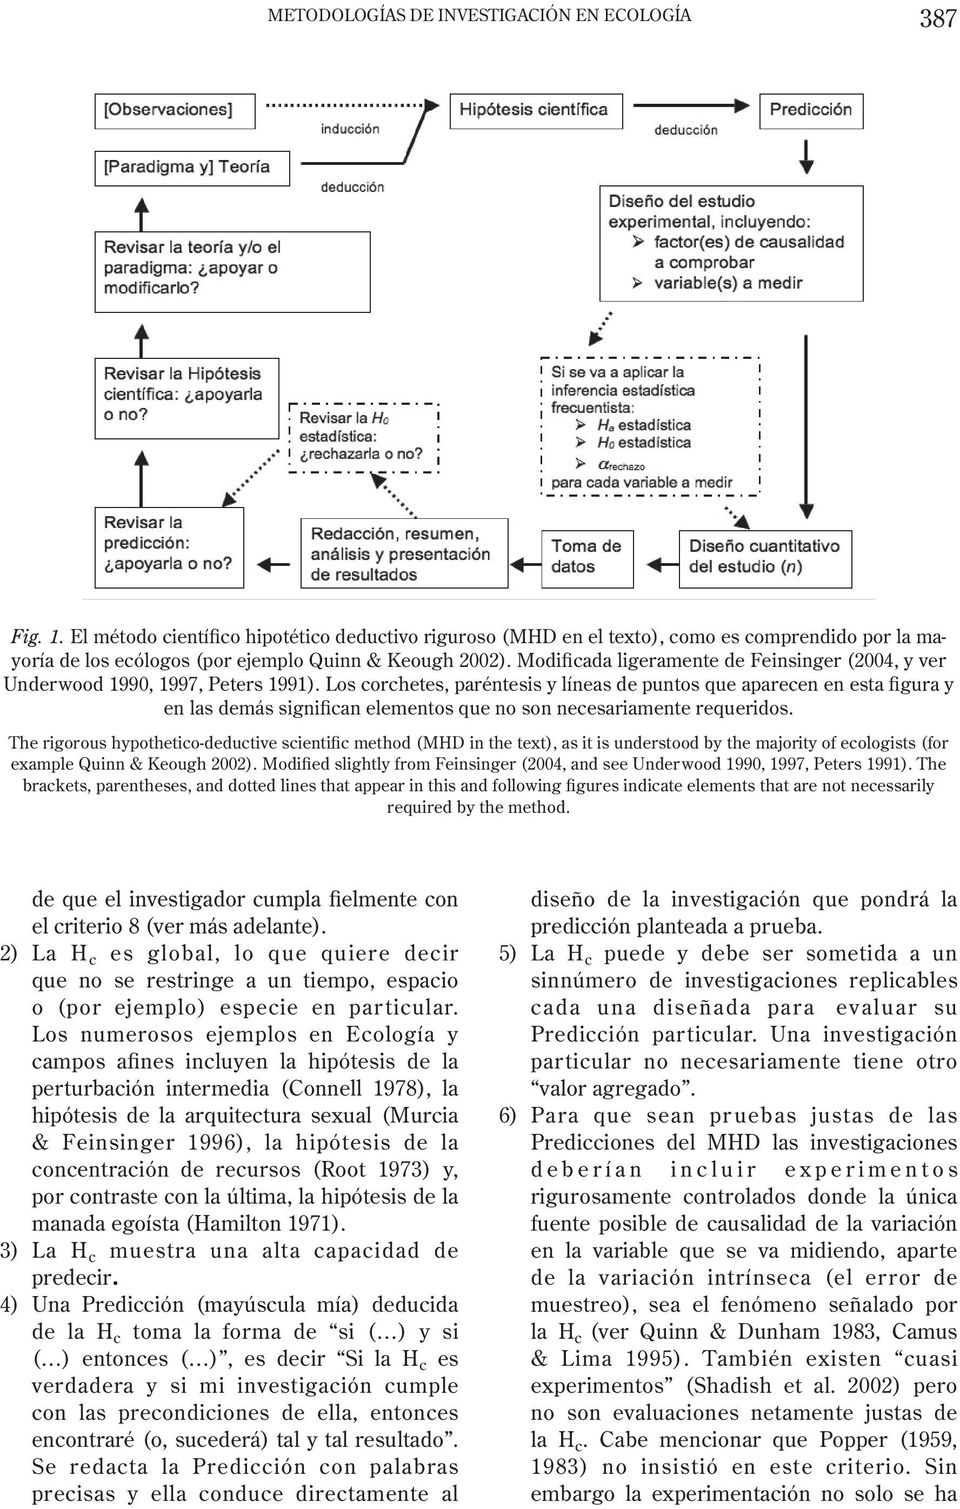 Modificada ligeramente de Feinsinger (2004, y ver Underwood 1990, 1997, Peters 1991).